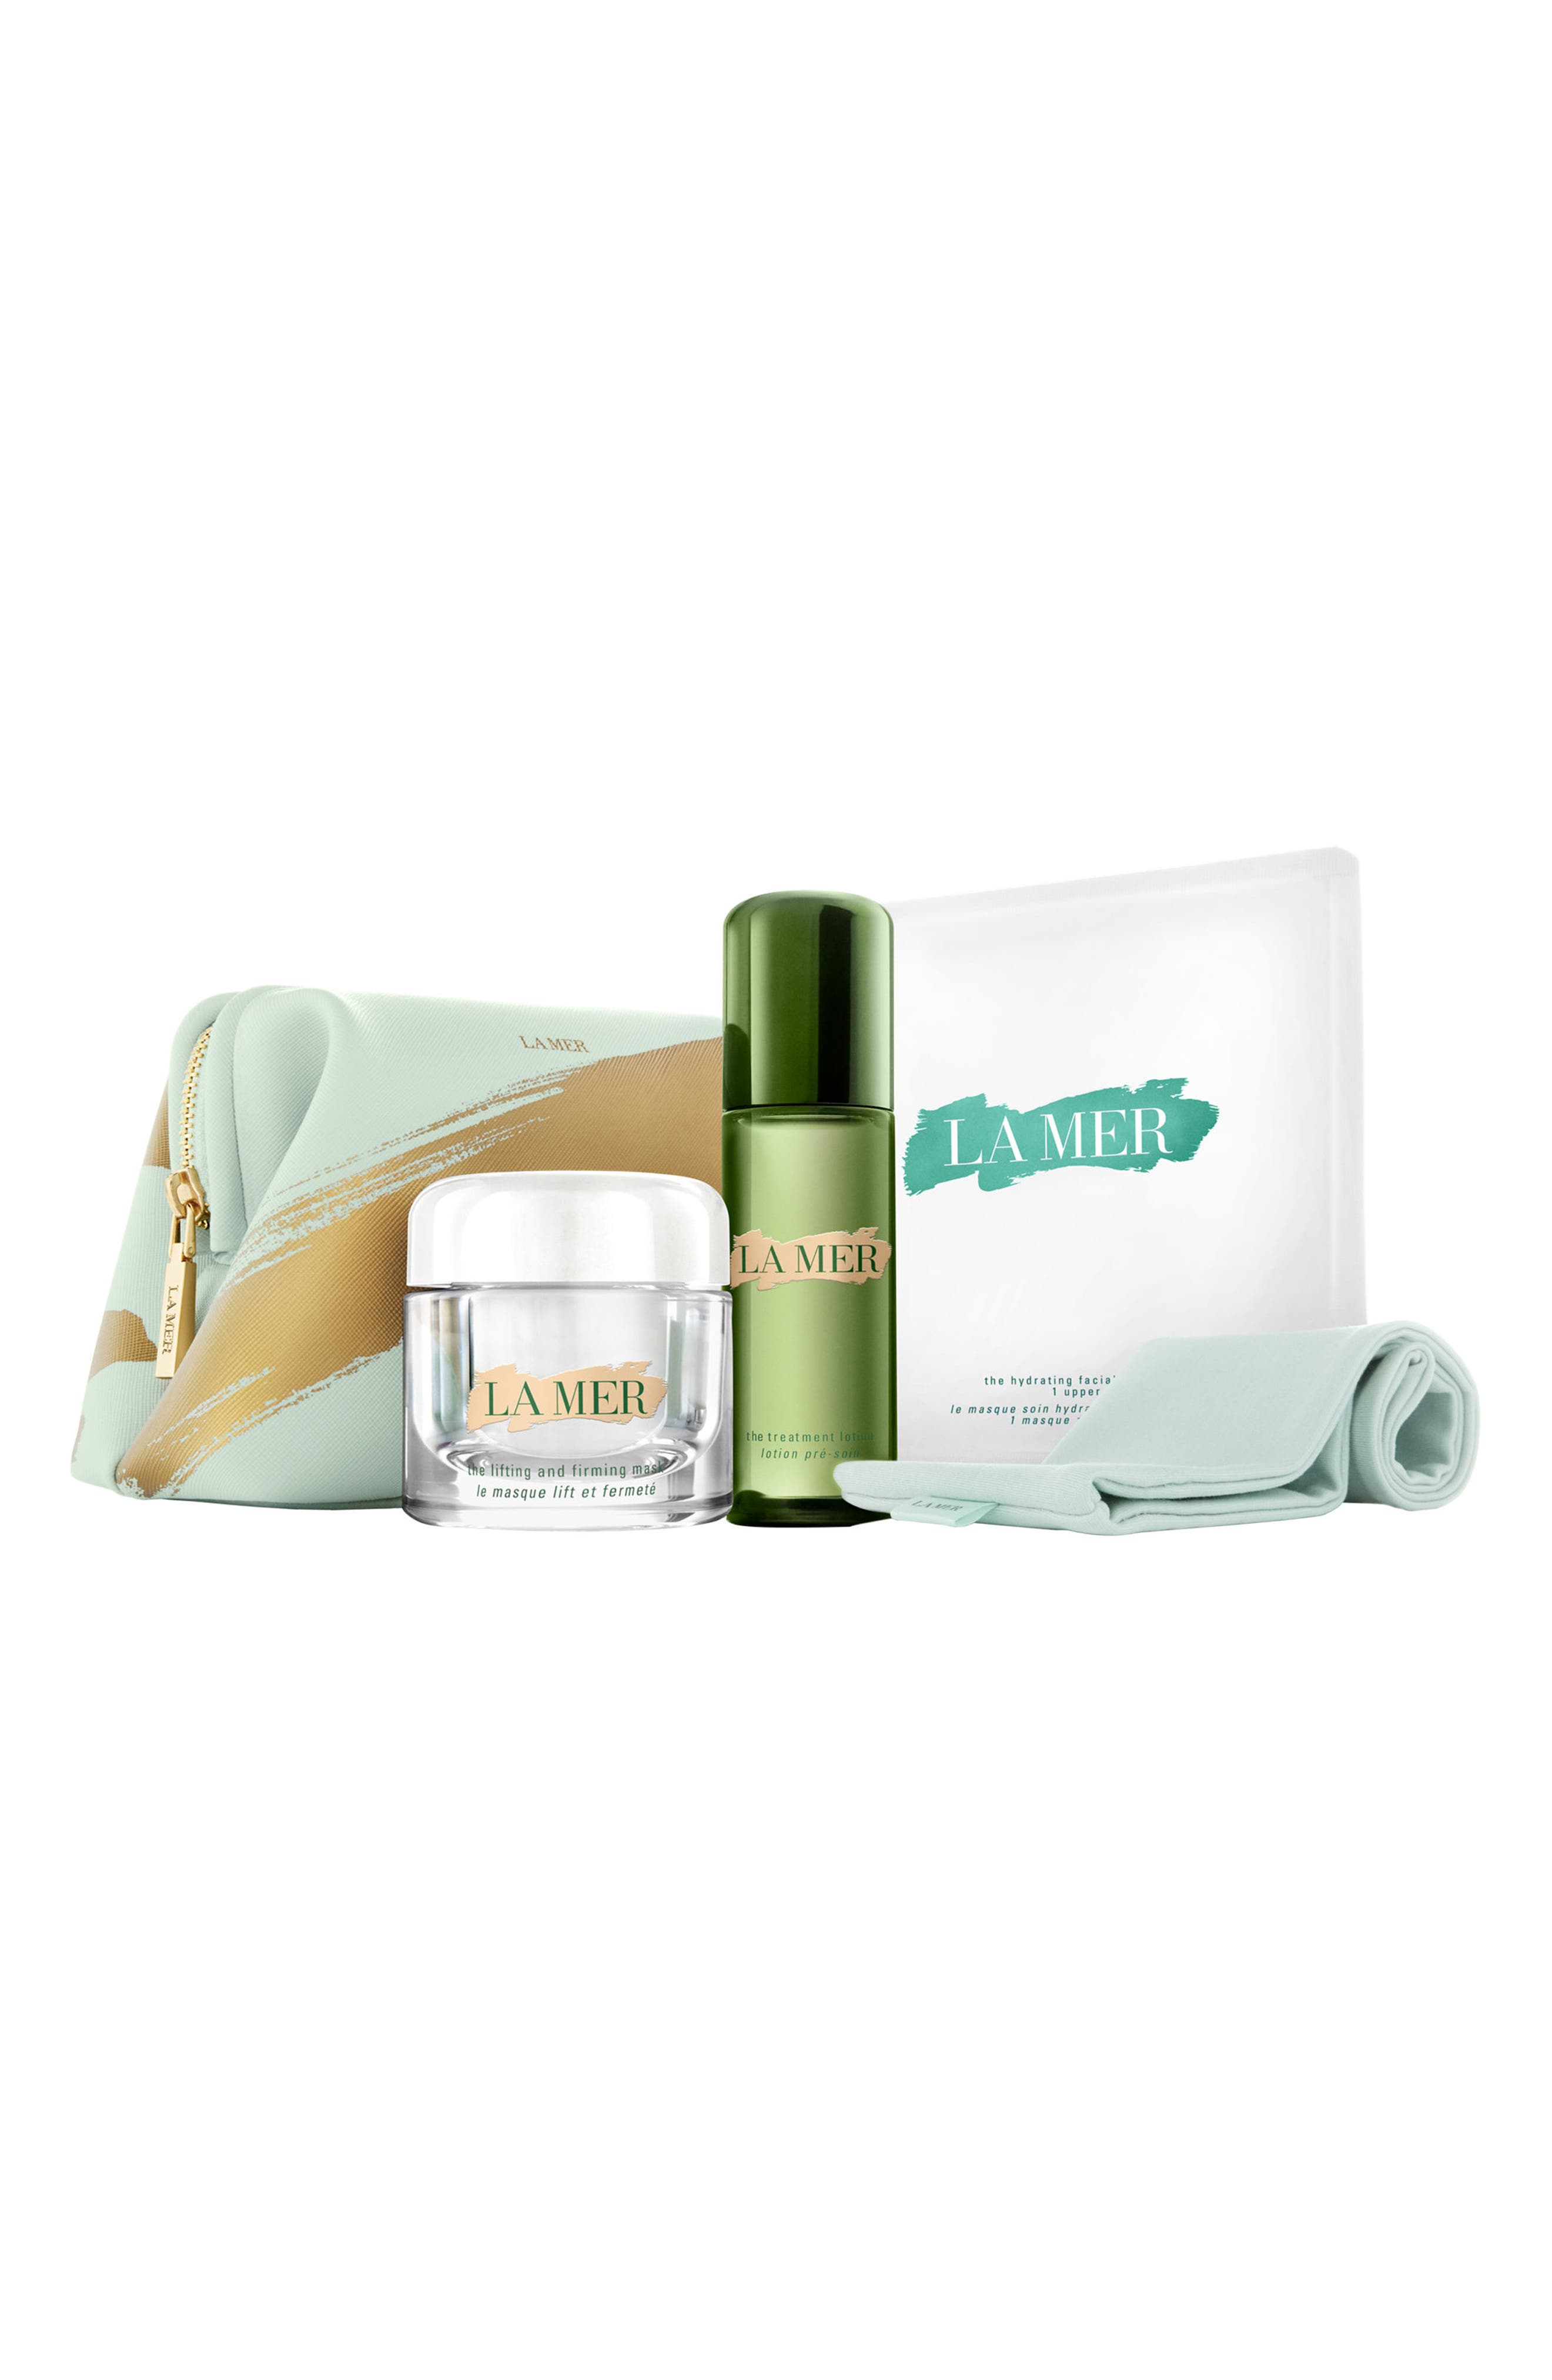 La Mer The Renewing Collection ($390 Value)